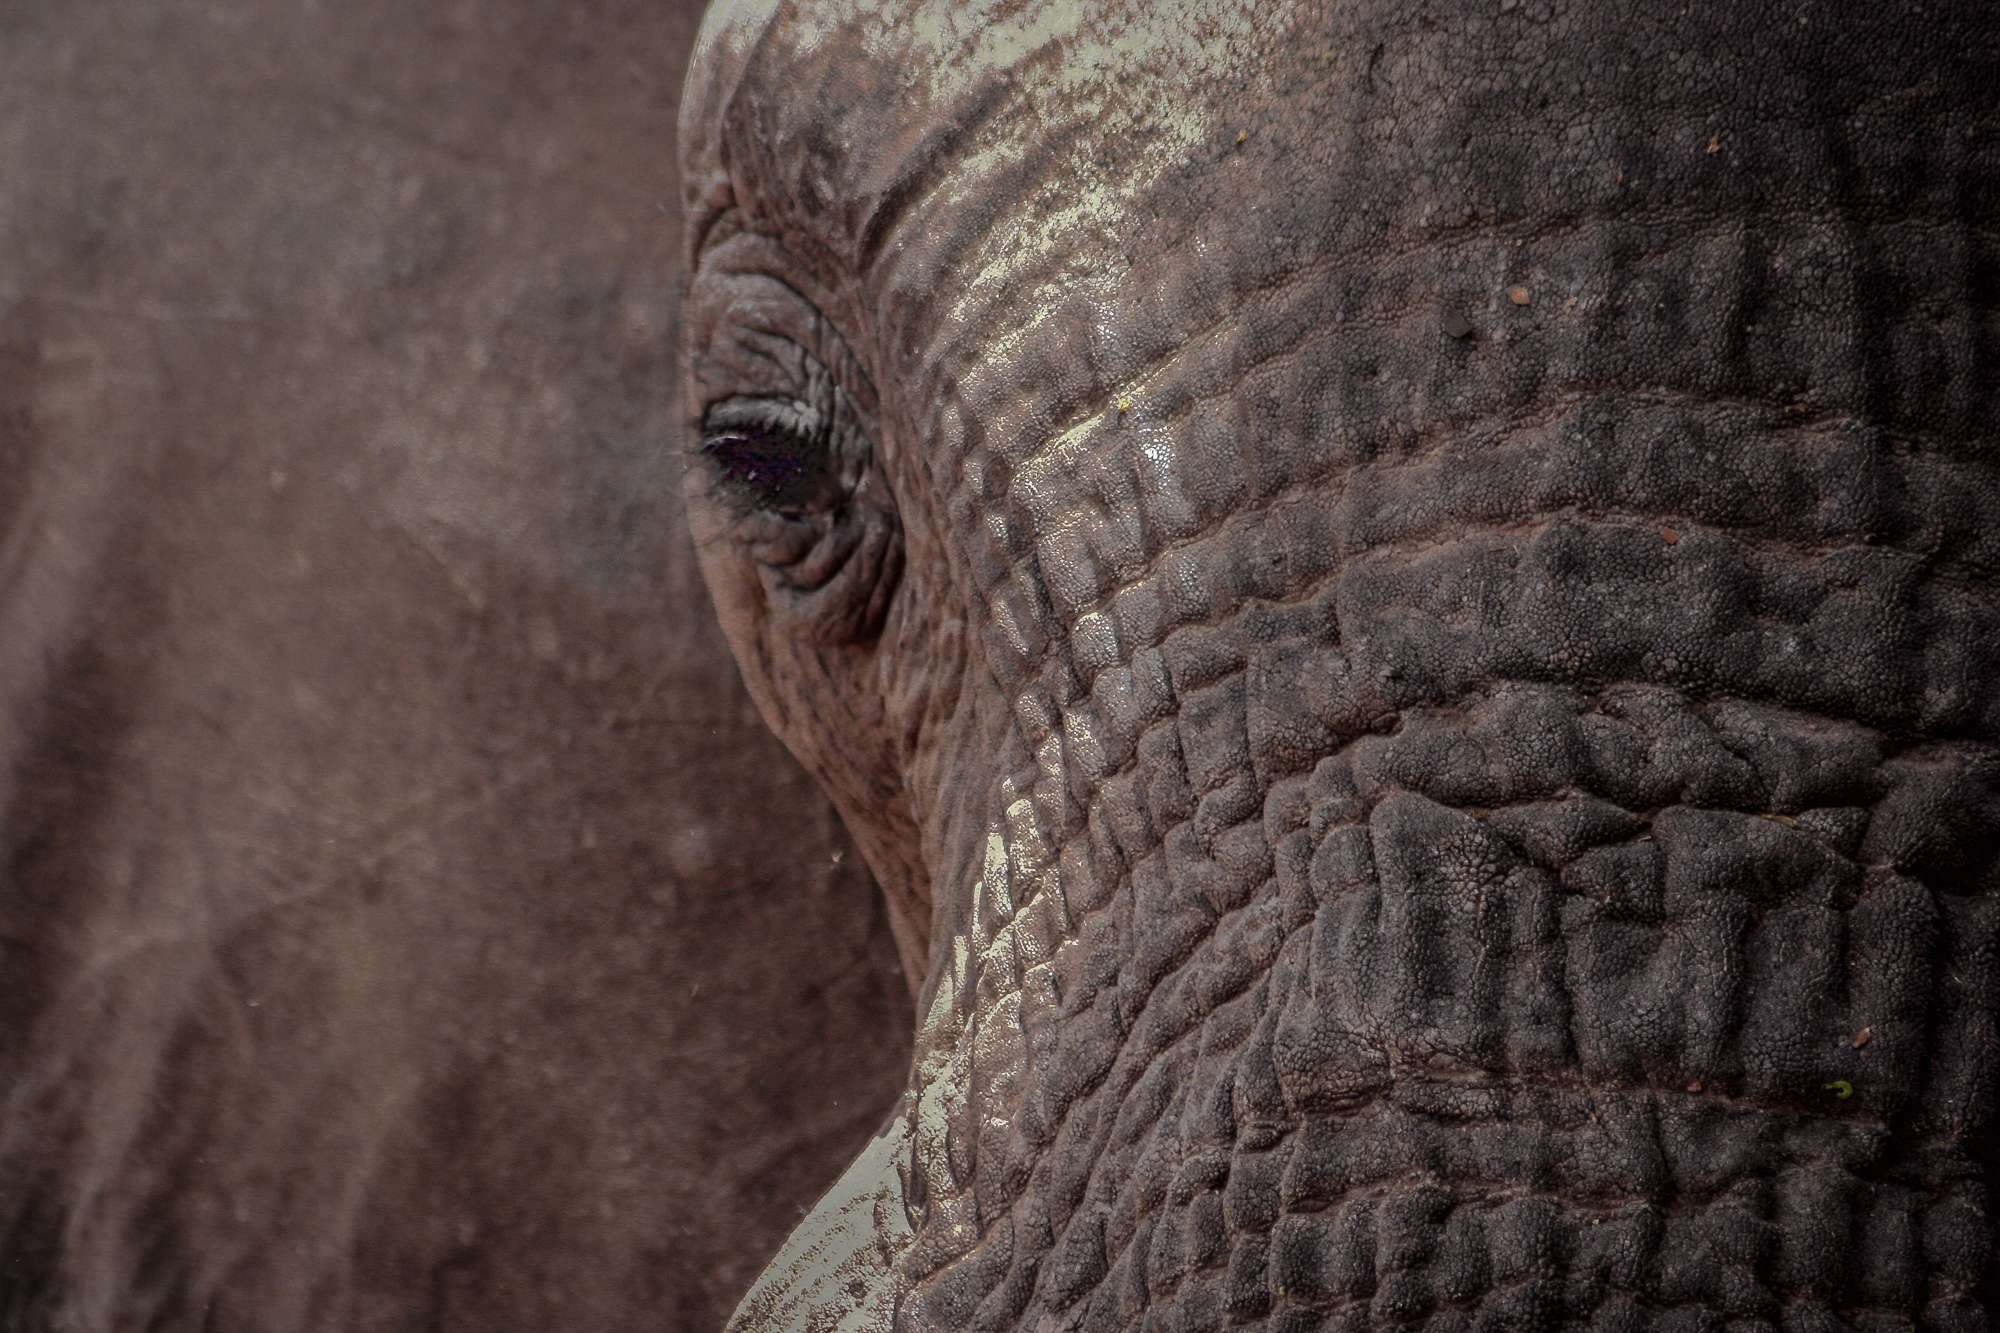 A different way of looking at an elephant